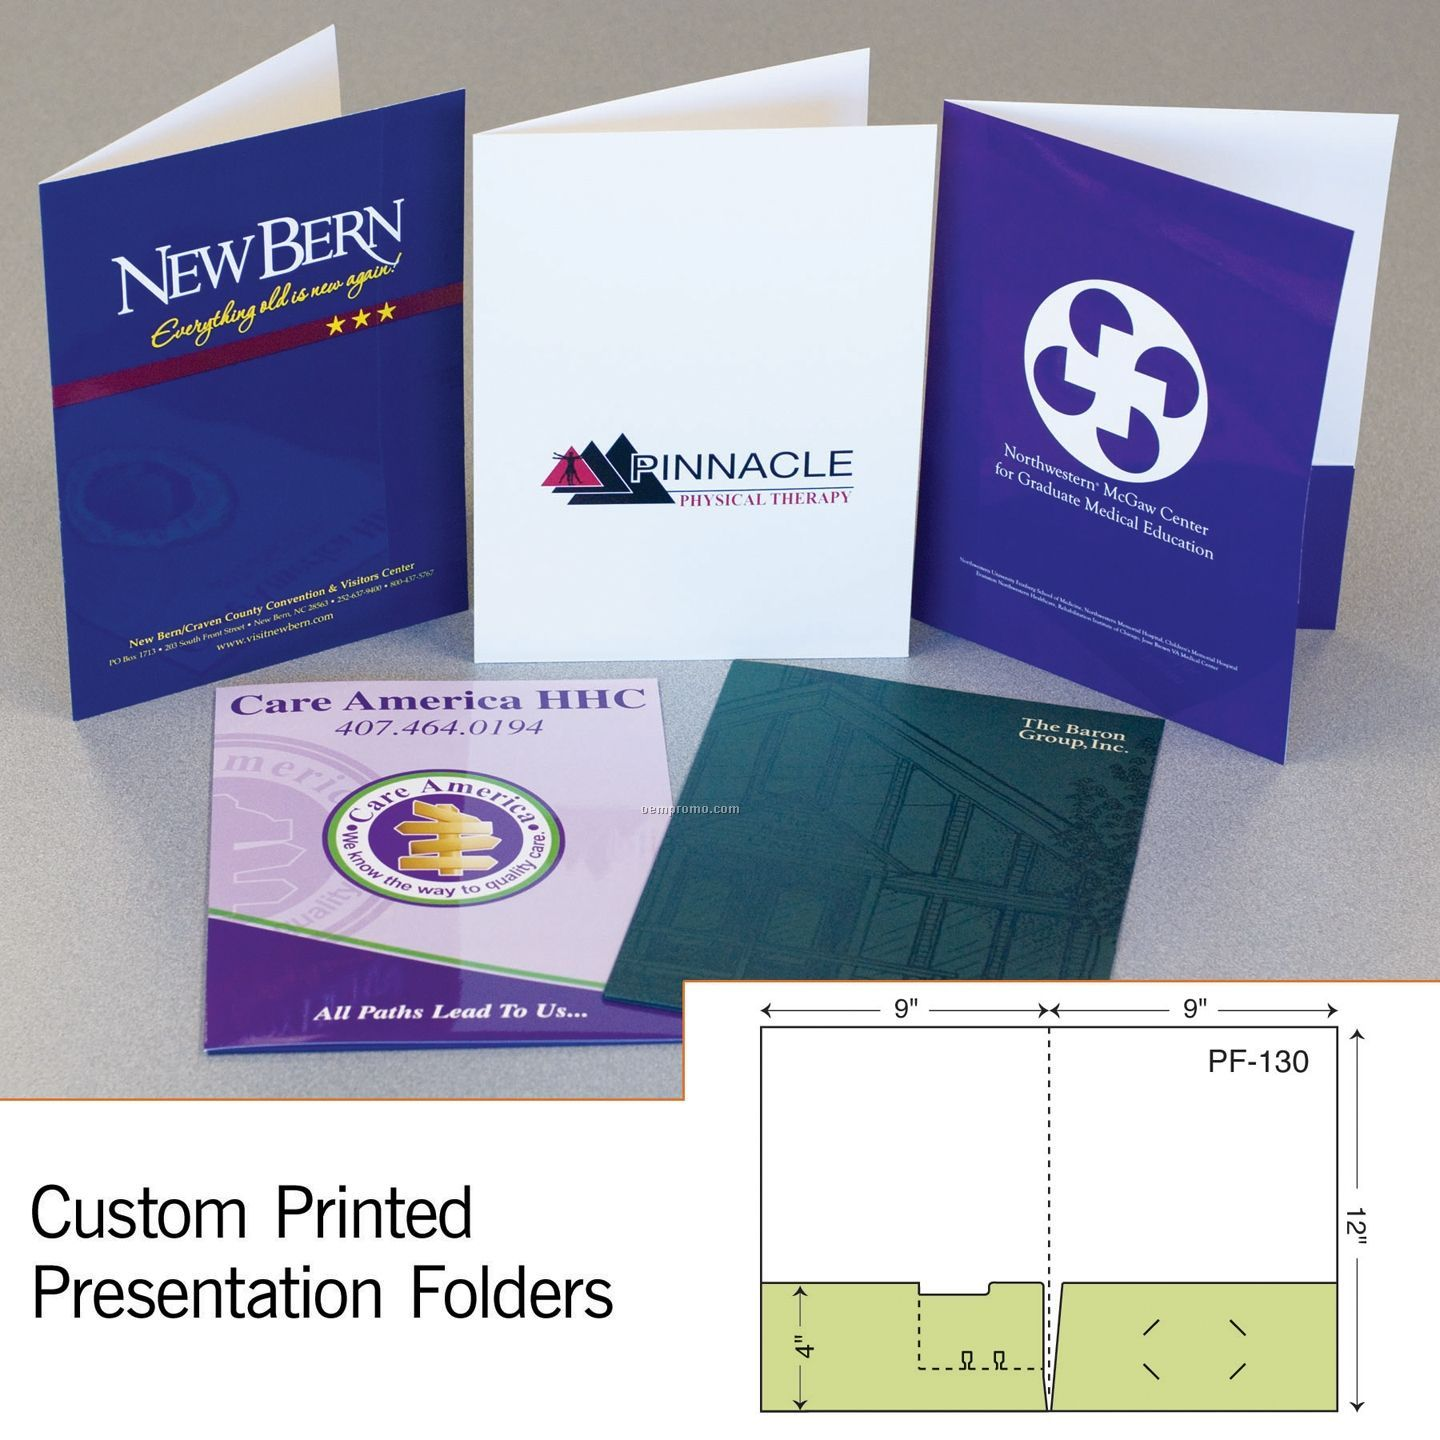 Presentation Folder W/ Perfed Rolodex Card In Left Pocket (1 Color/1 Side)